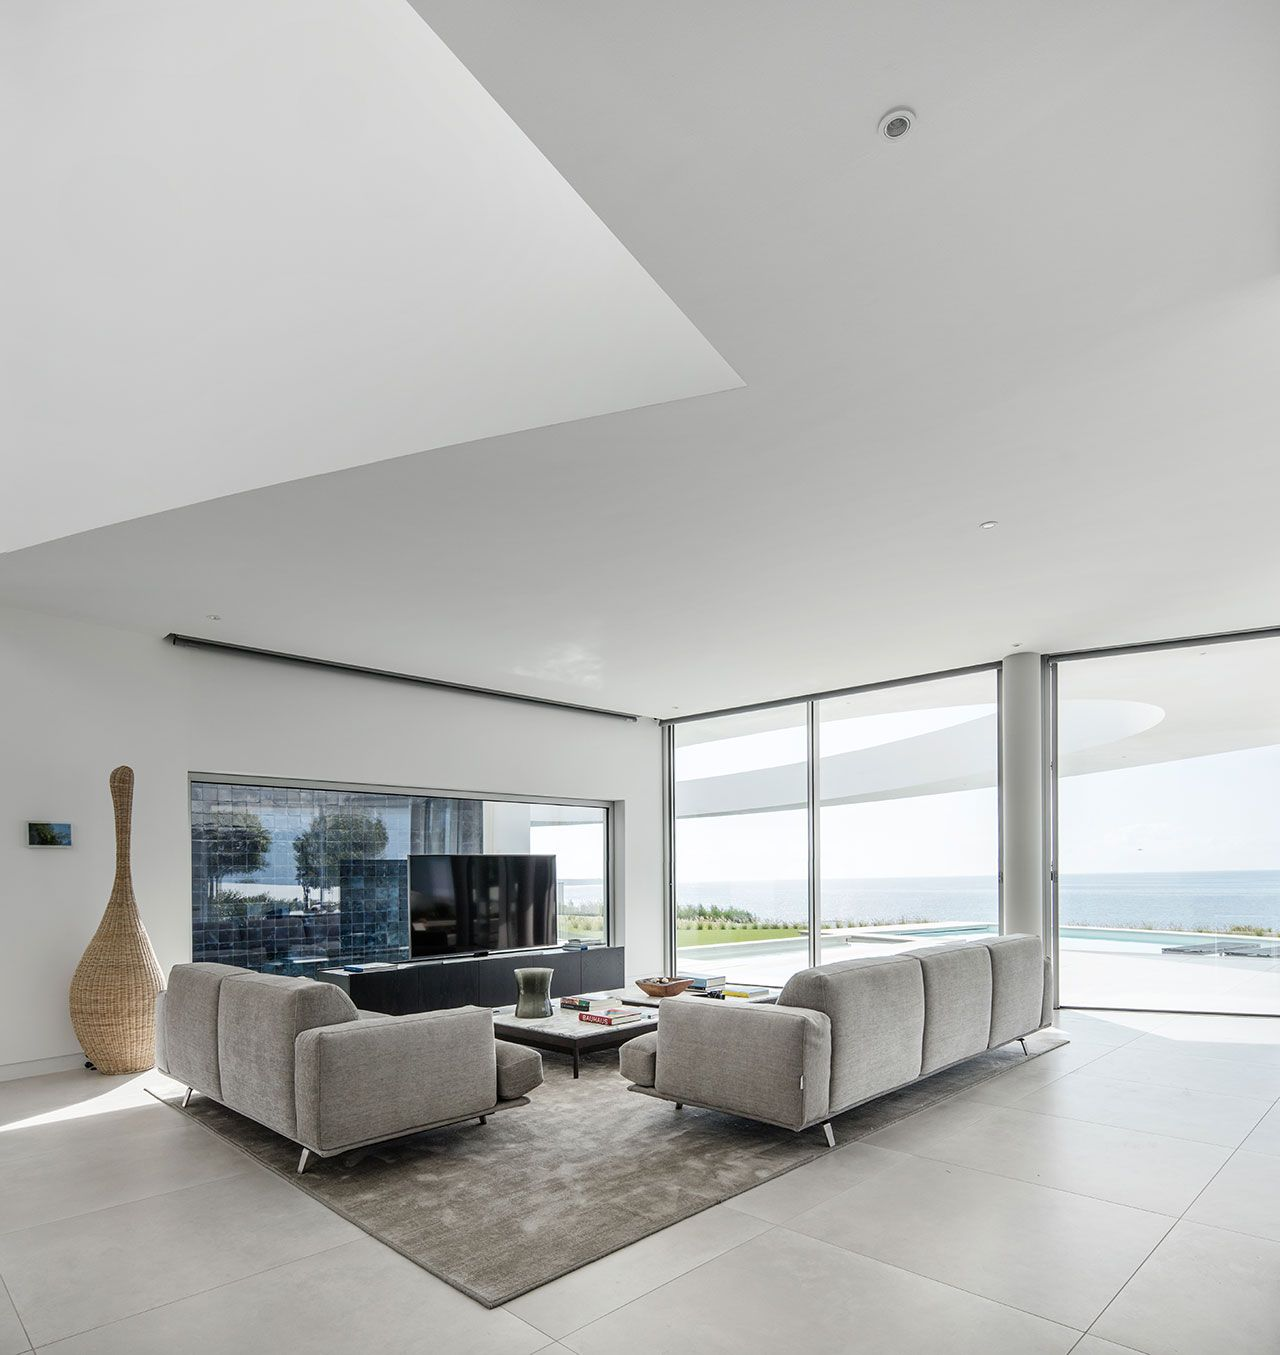 The Elliptic House by Mário Martins Atelier in Lagos, Portugal ...